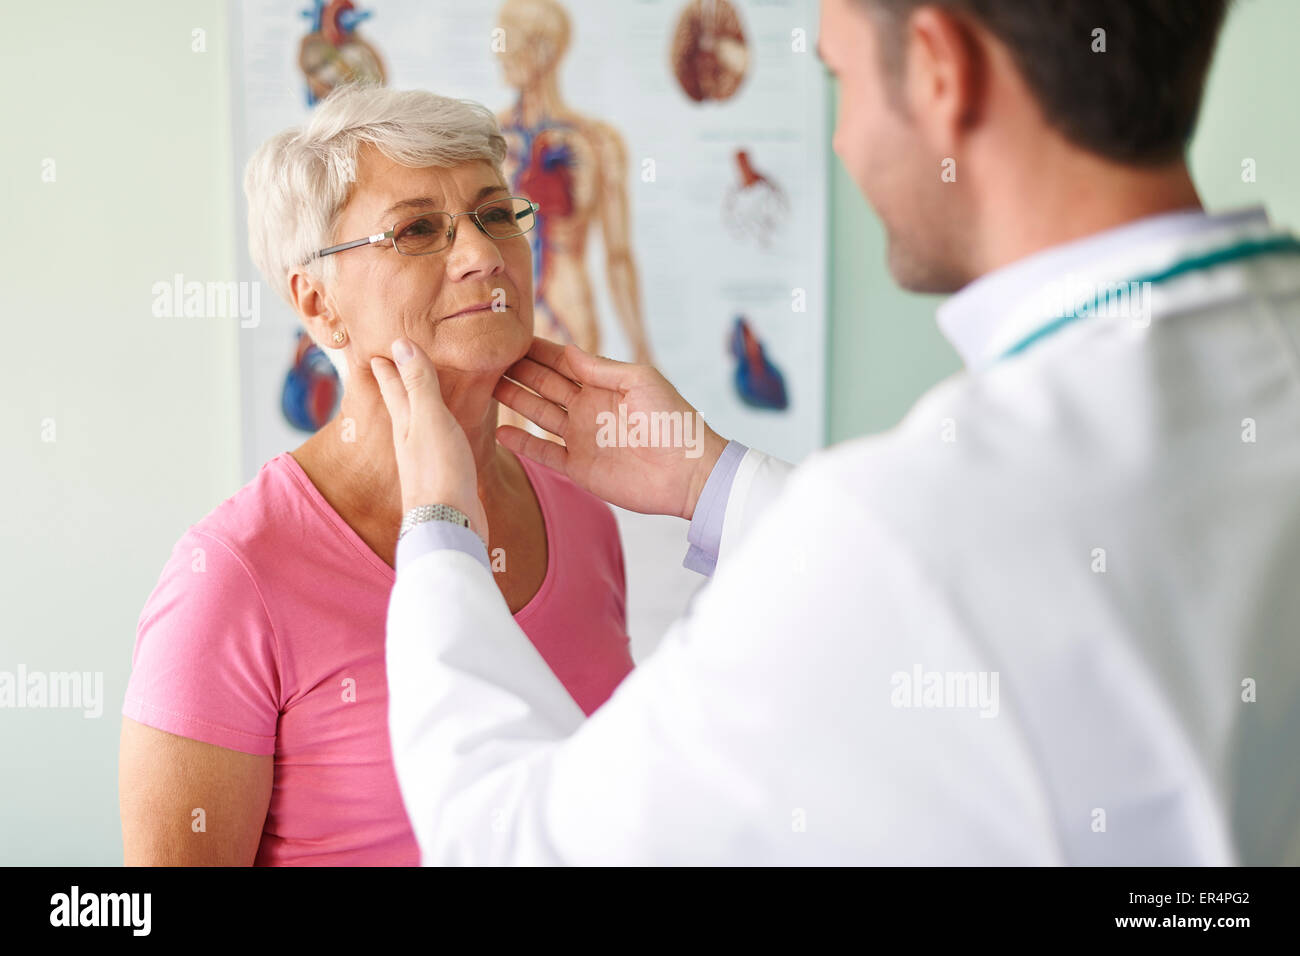 She has problems with sore throat. Debica, Poland - Stock Image